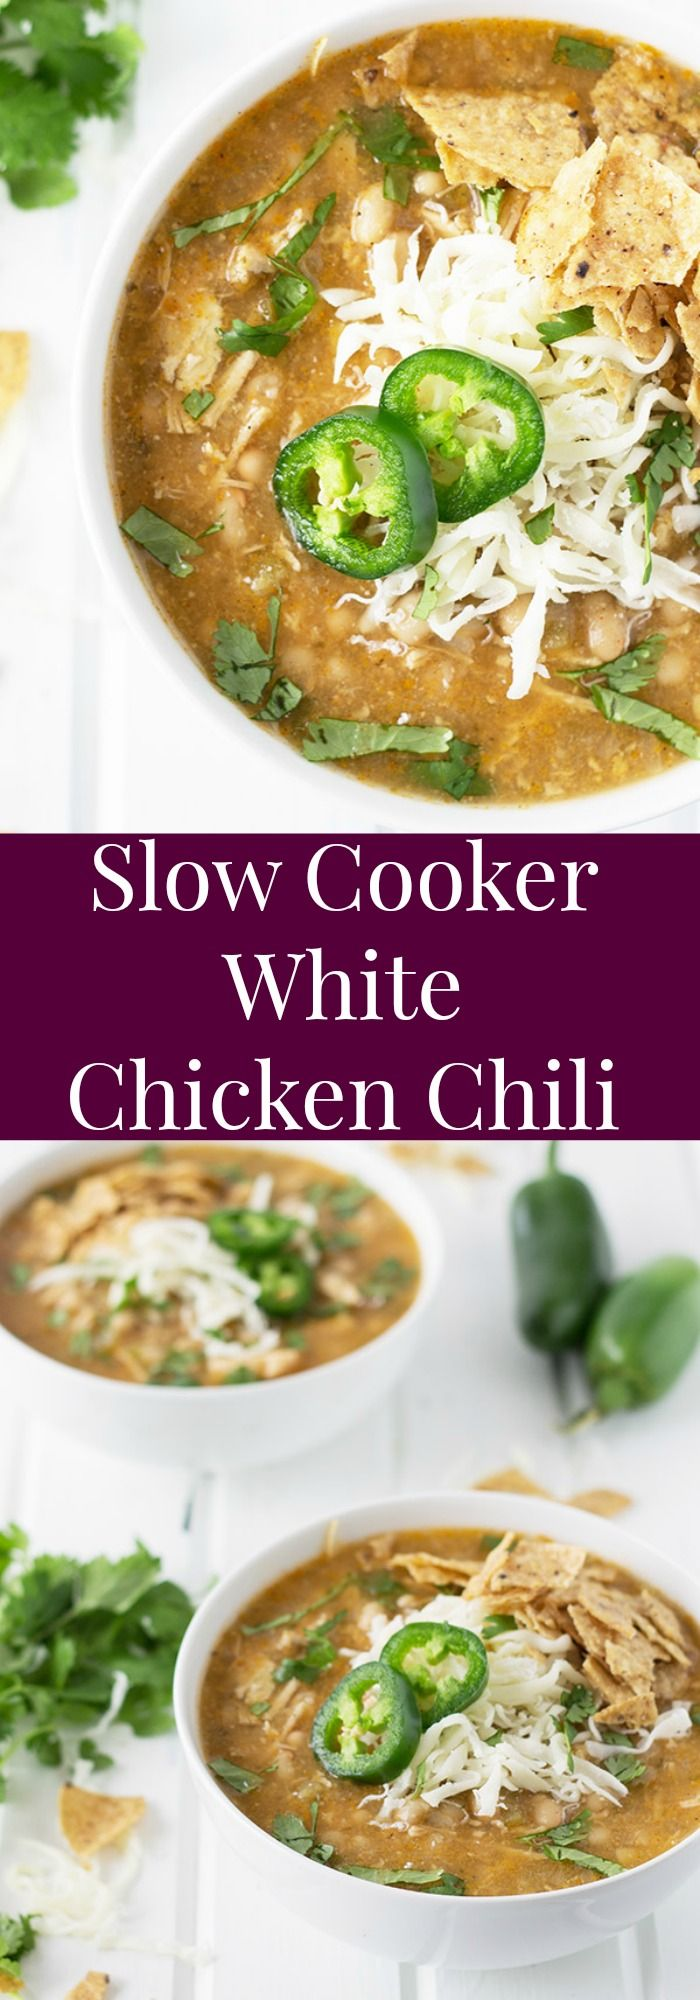 Slow Cooker White Chicken Chili- this comforting soup is made easy right in your slow cooker!   countrysidecravings.com